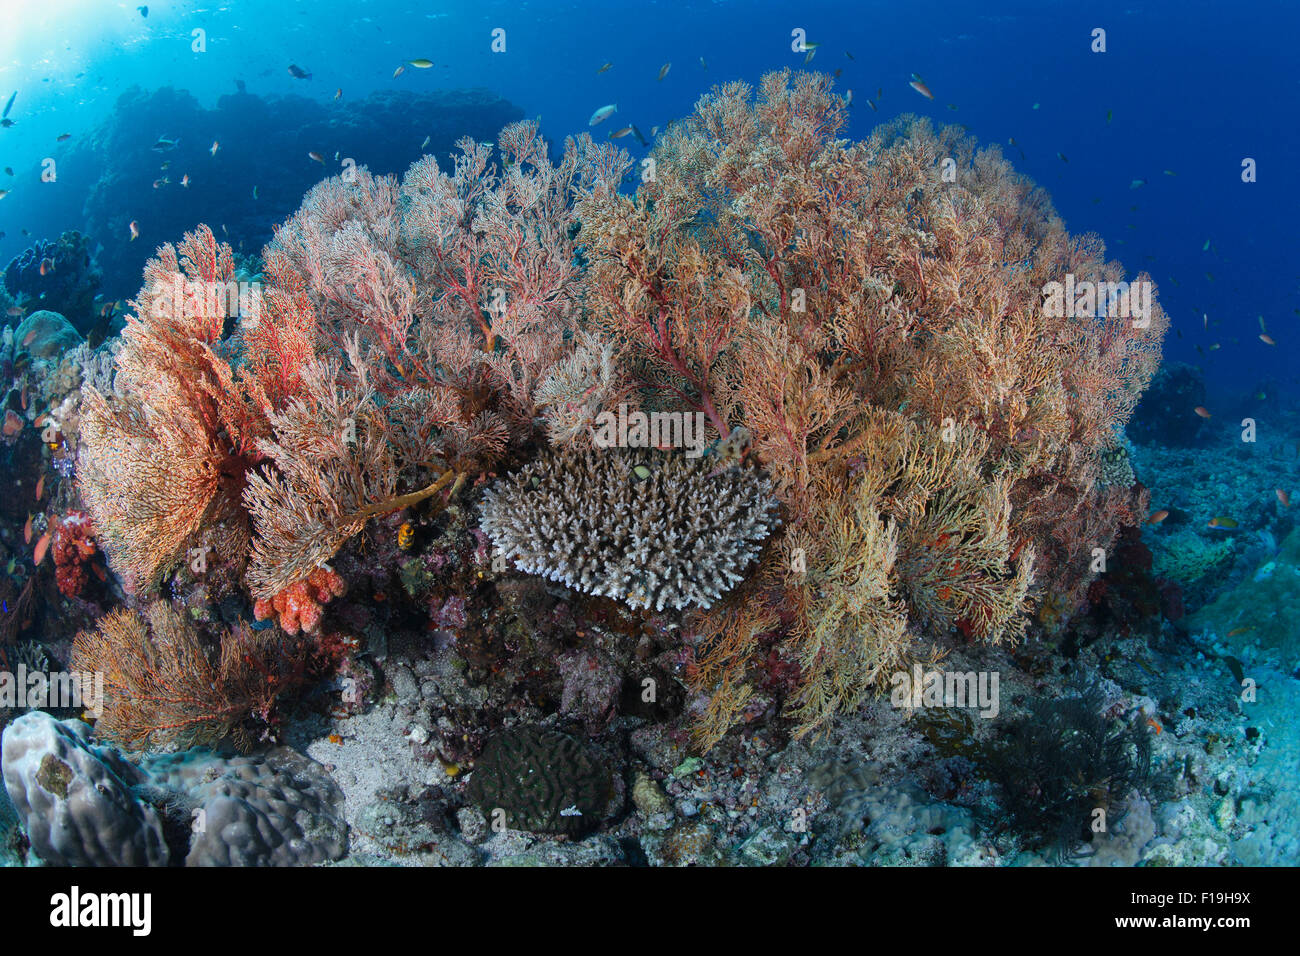 px0668-D. sea fans (Melithaea sp.). Indonesia, tropical Pacific Ocean. Photo Copyright © Brandon Cole. All - Stock Image